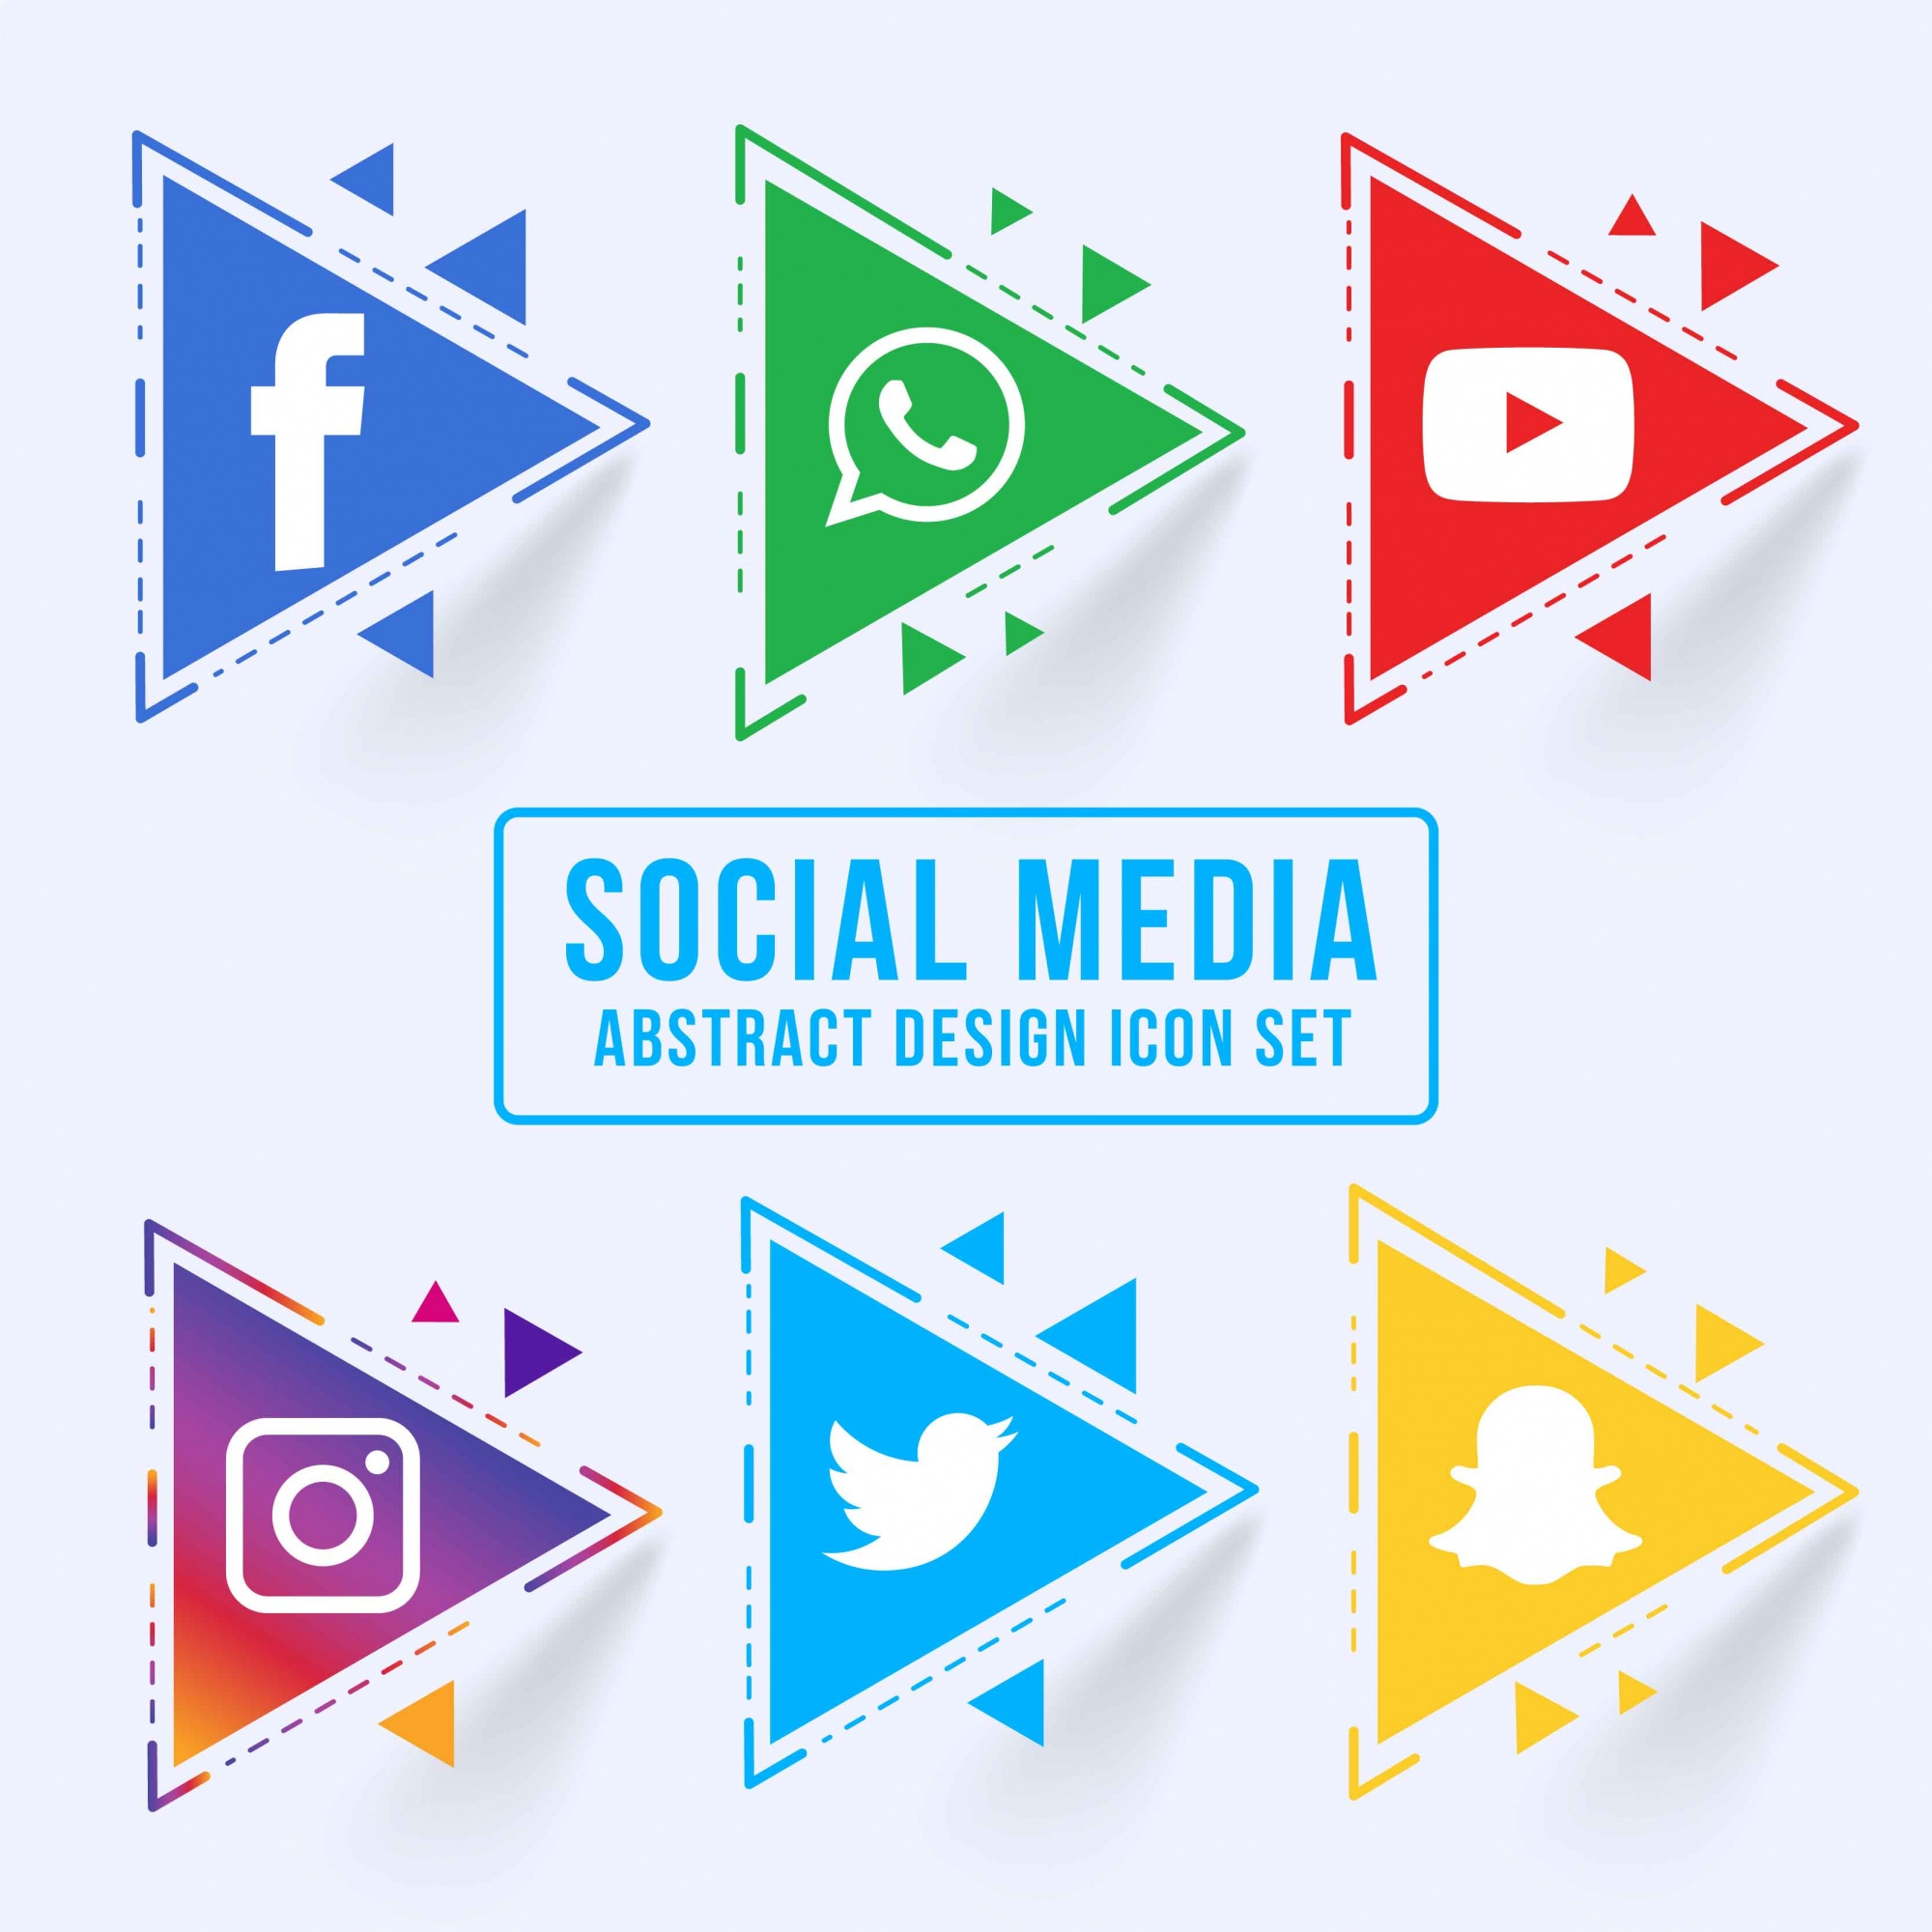 Abstracte Triangular Social Media Icon Set